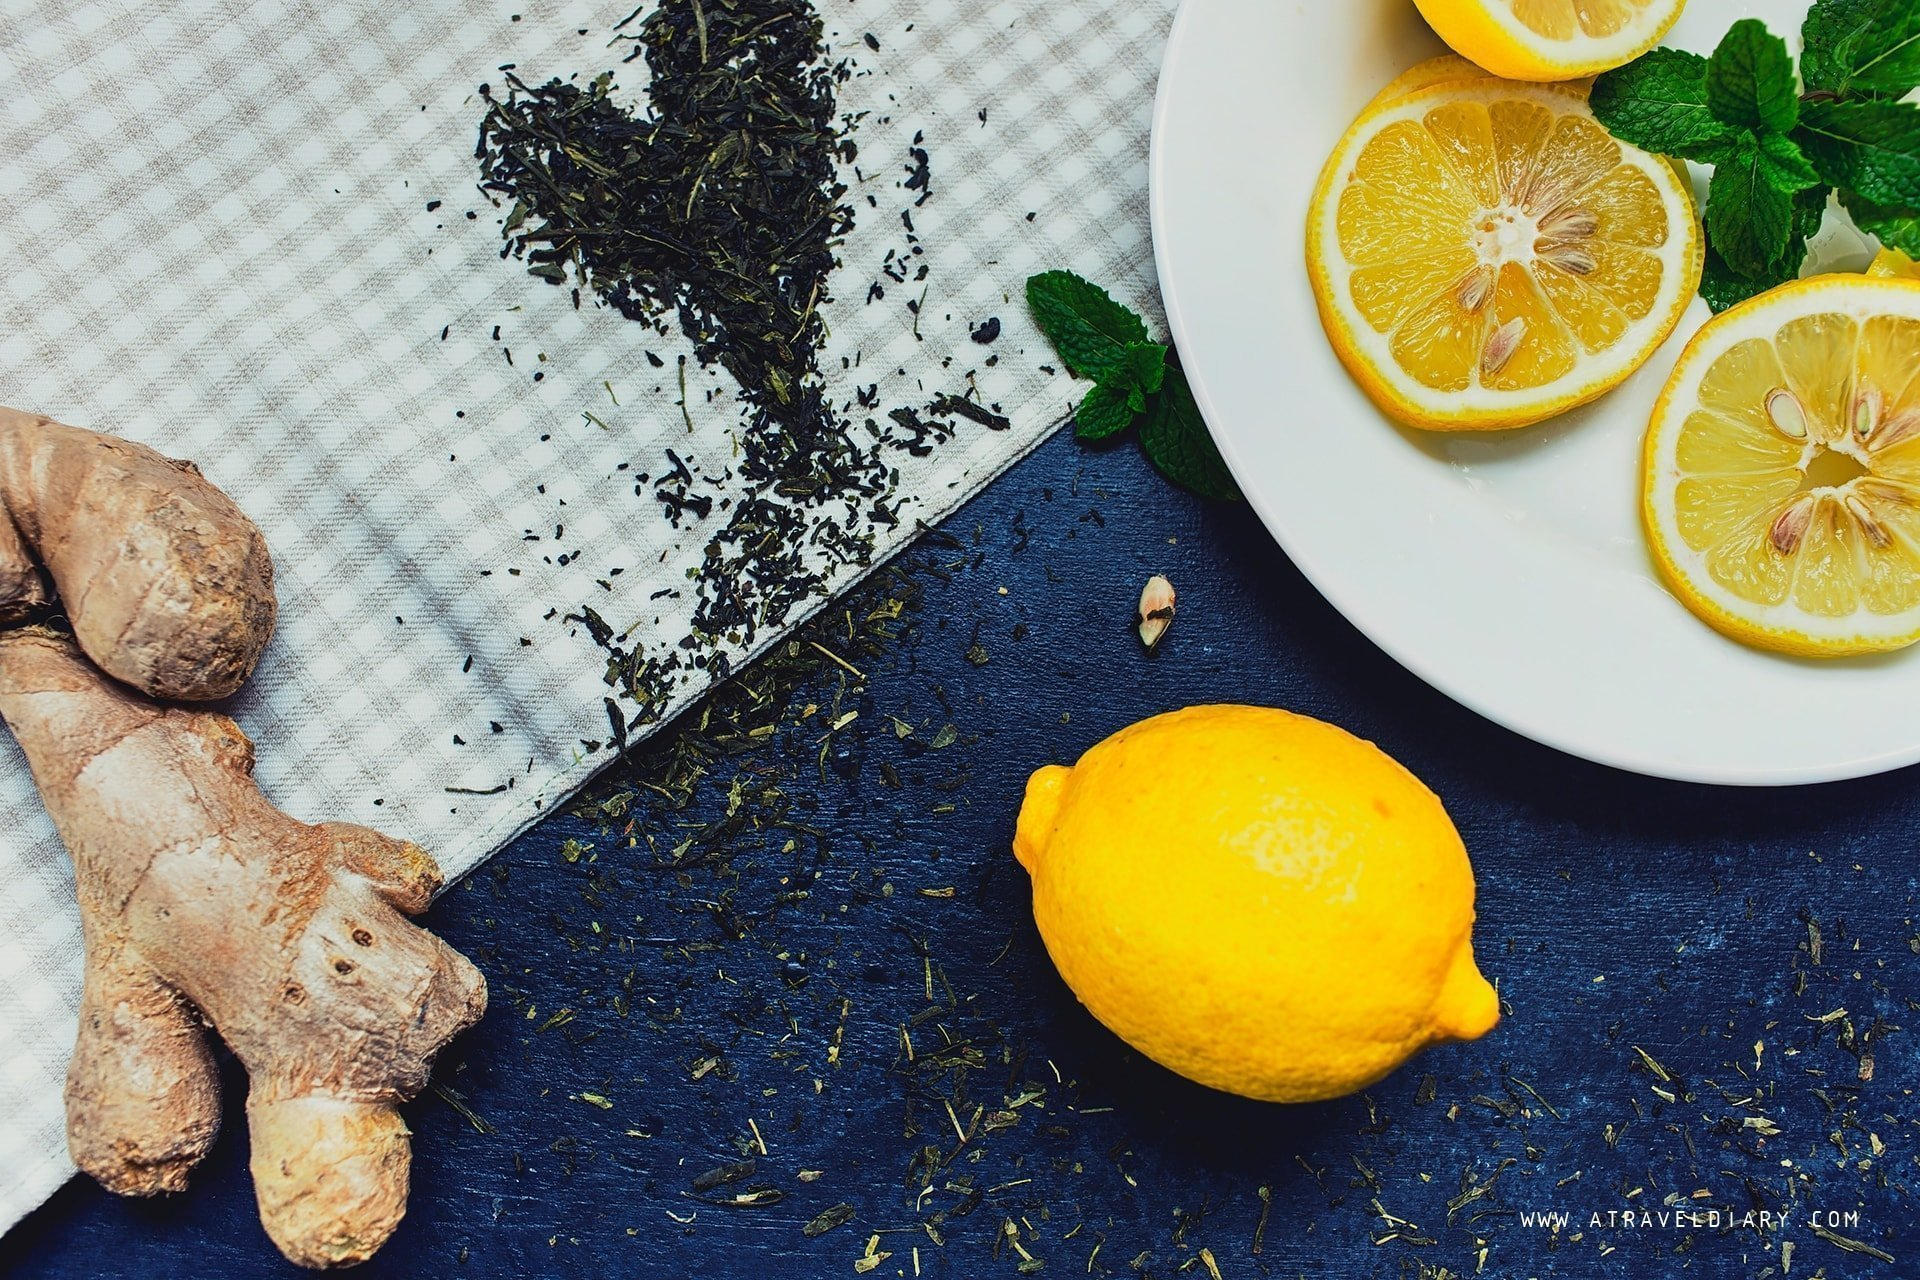 mint greentea ginger and lemon for ginger tea detox drink